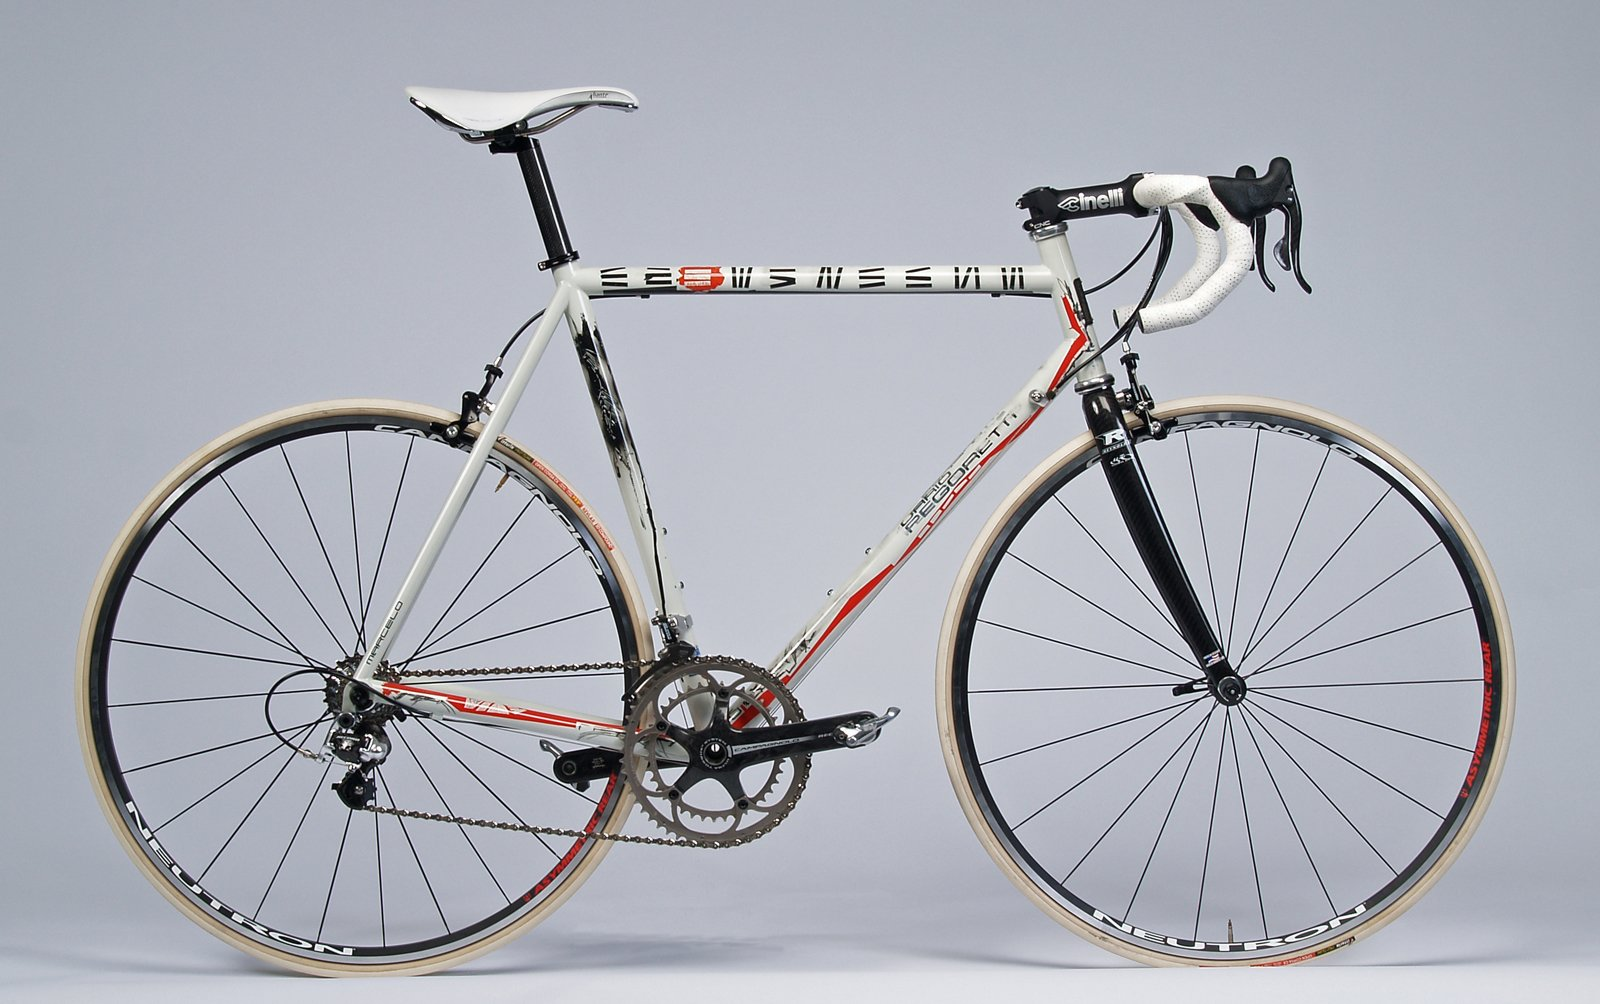 OLYMPUS DIGITAL CAMERA  Commute in Style with a Modern Bicycle by Luke Hopping from Bespoke: The Handbuilt Bicycle